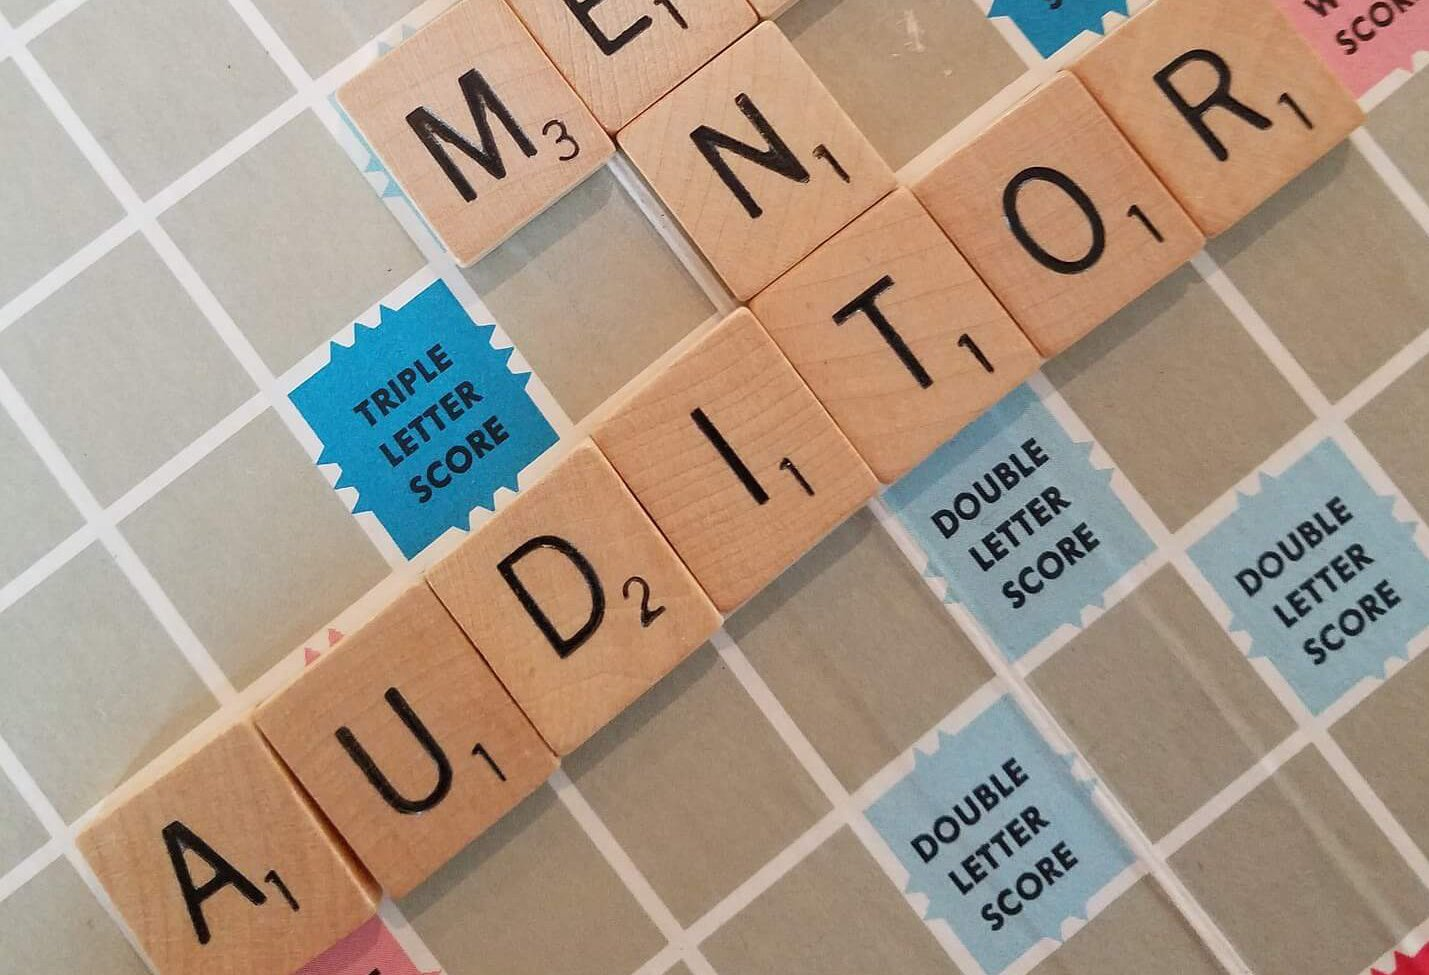 Scrabble Auditor